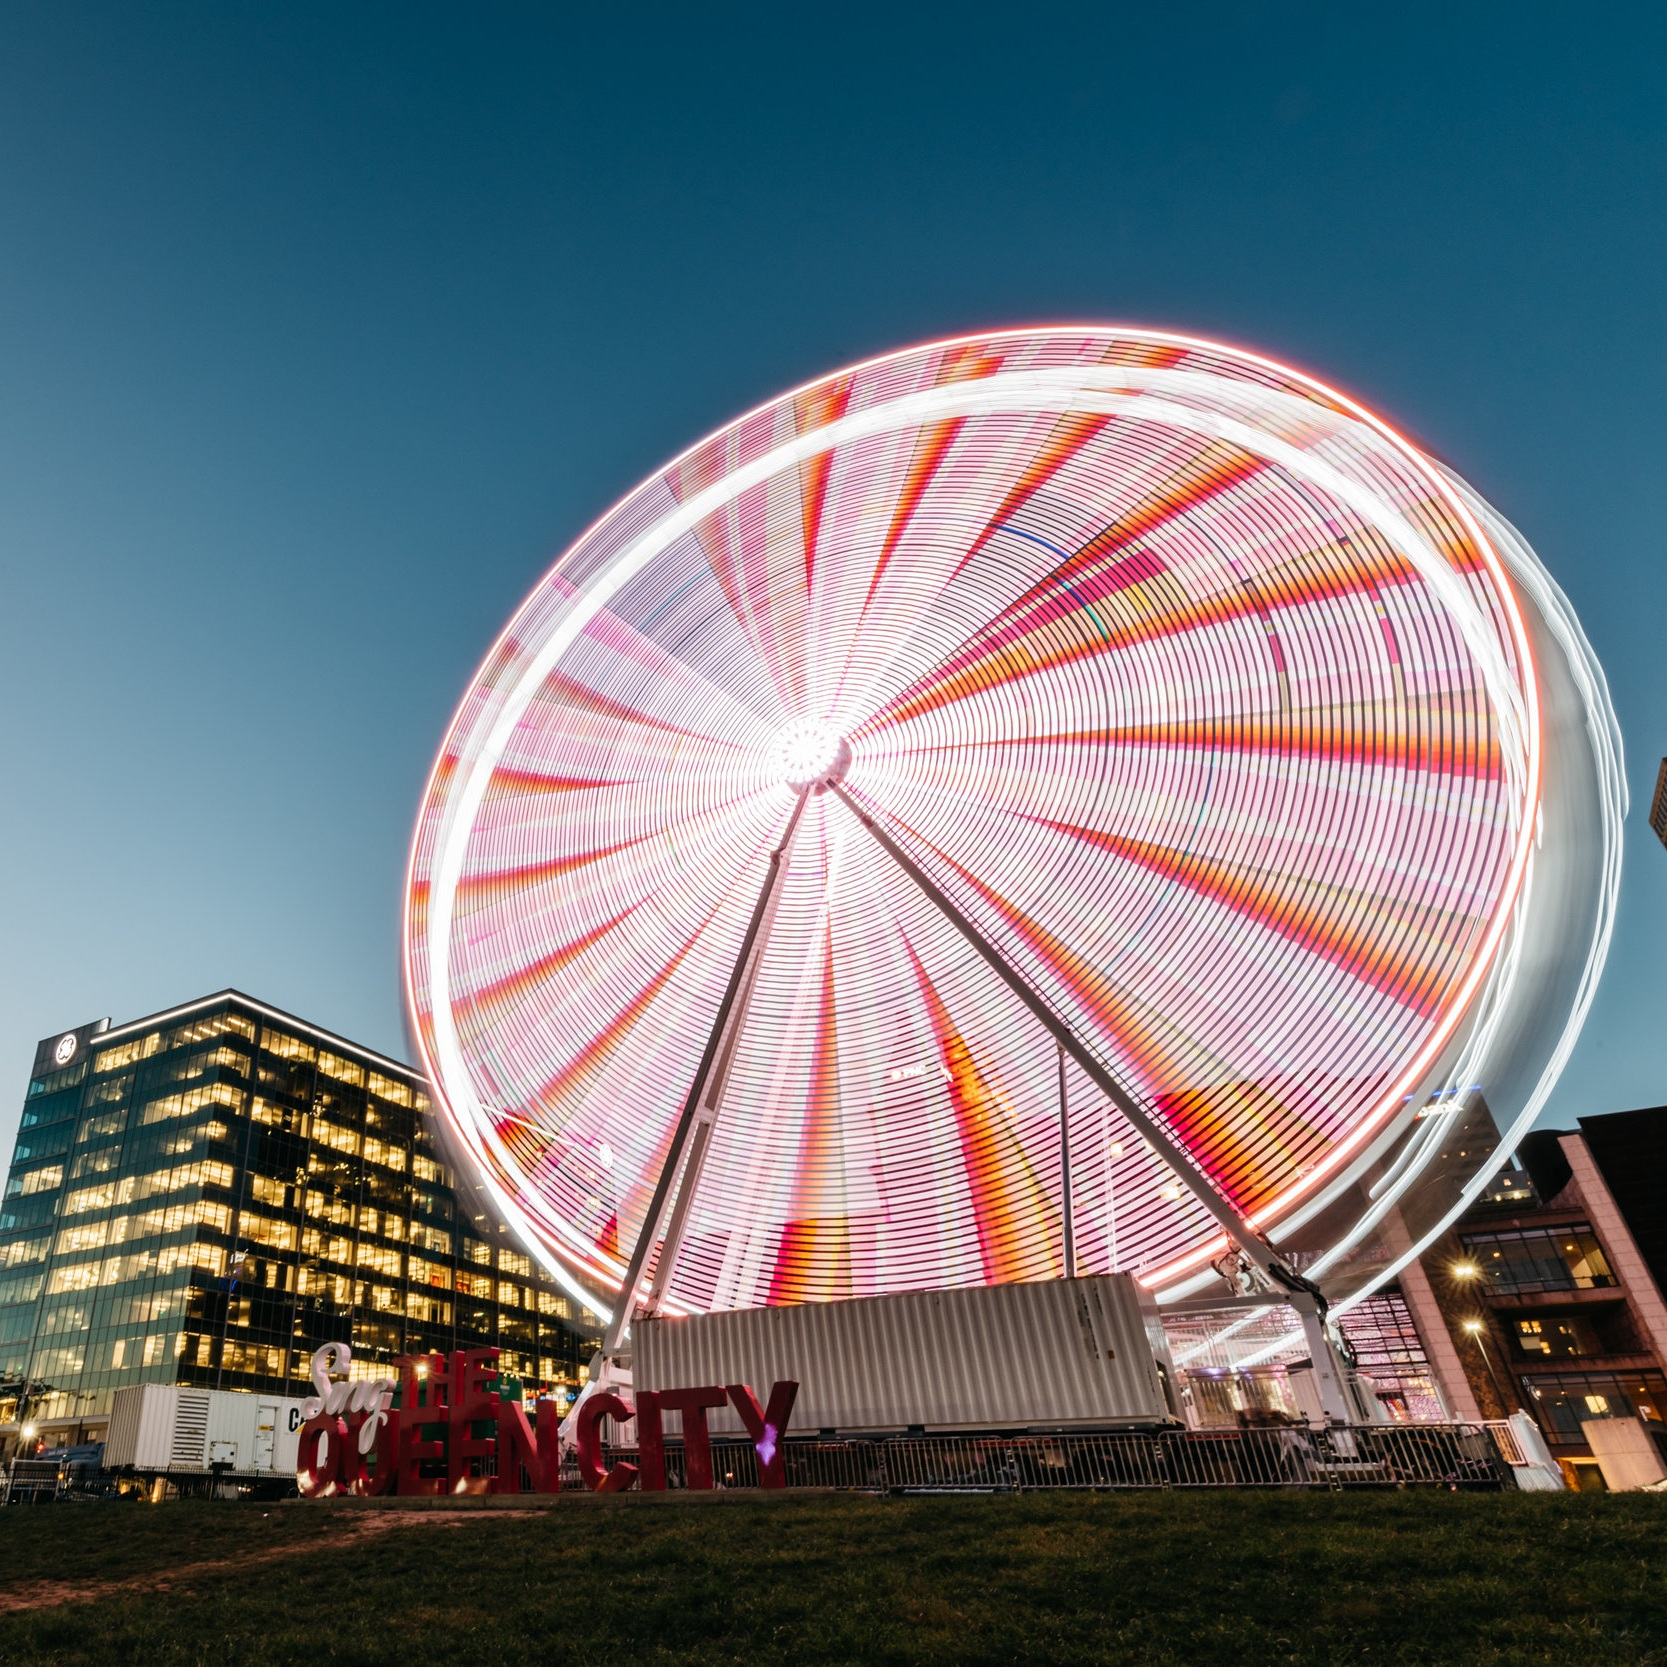 SkyStar Observation Wheel   Experience 12 minutes of breathtaking views from this 150-foot tall Ferris wheel on the banks of the Ohio River.